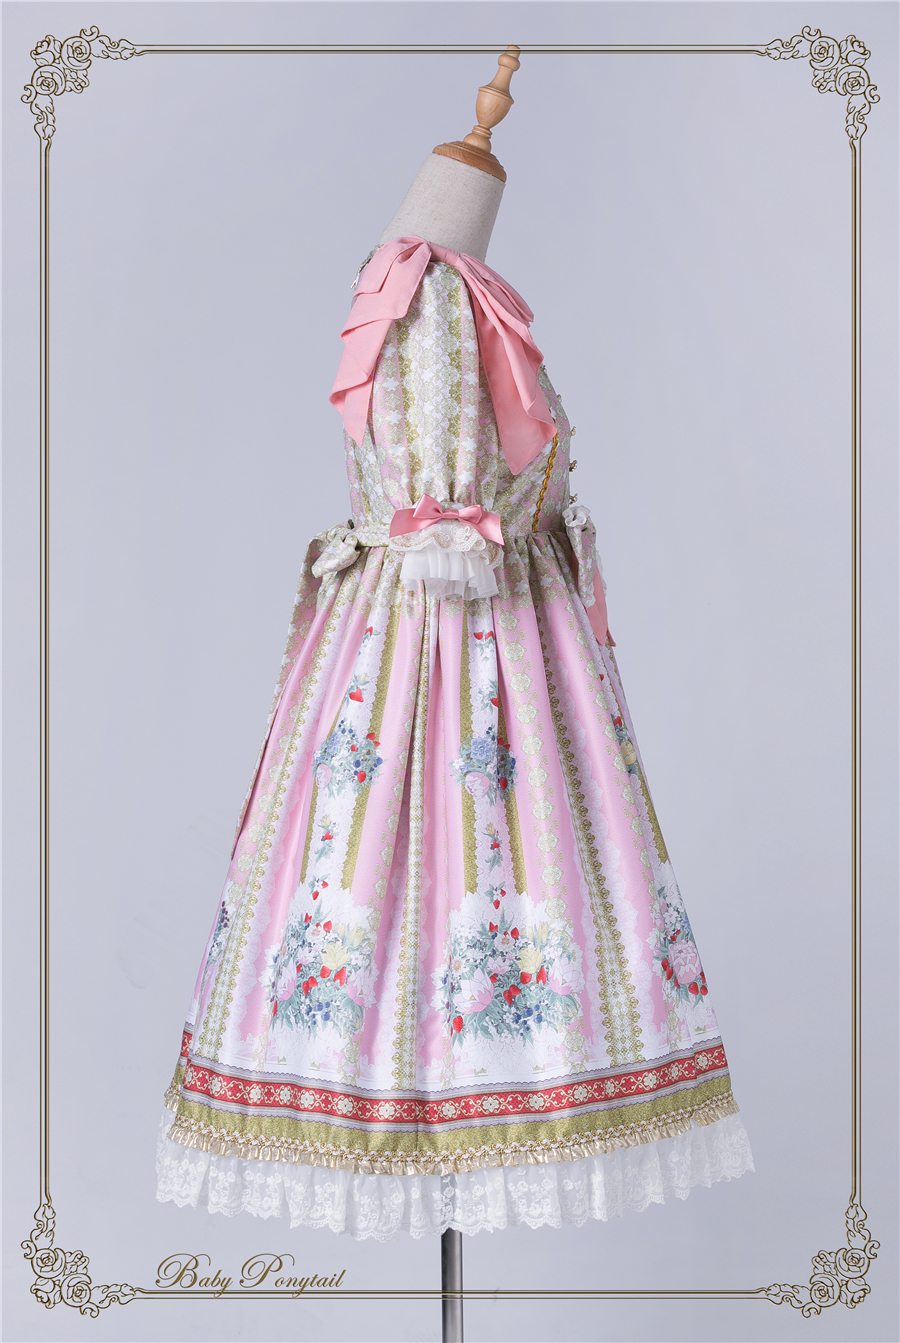 Baby Ponytail_Stock Photo_Rococo Bouquet_OP Pink_2.jpg